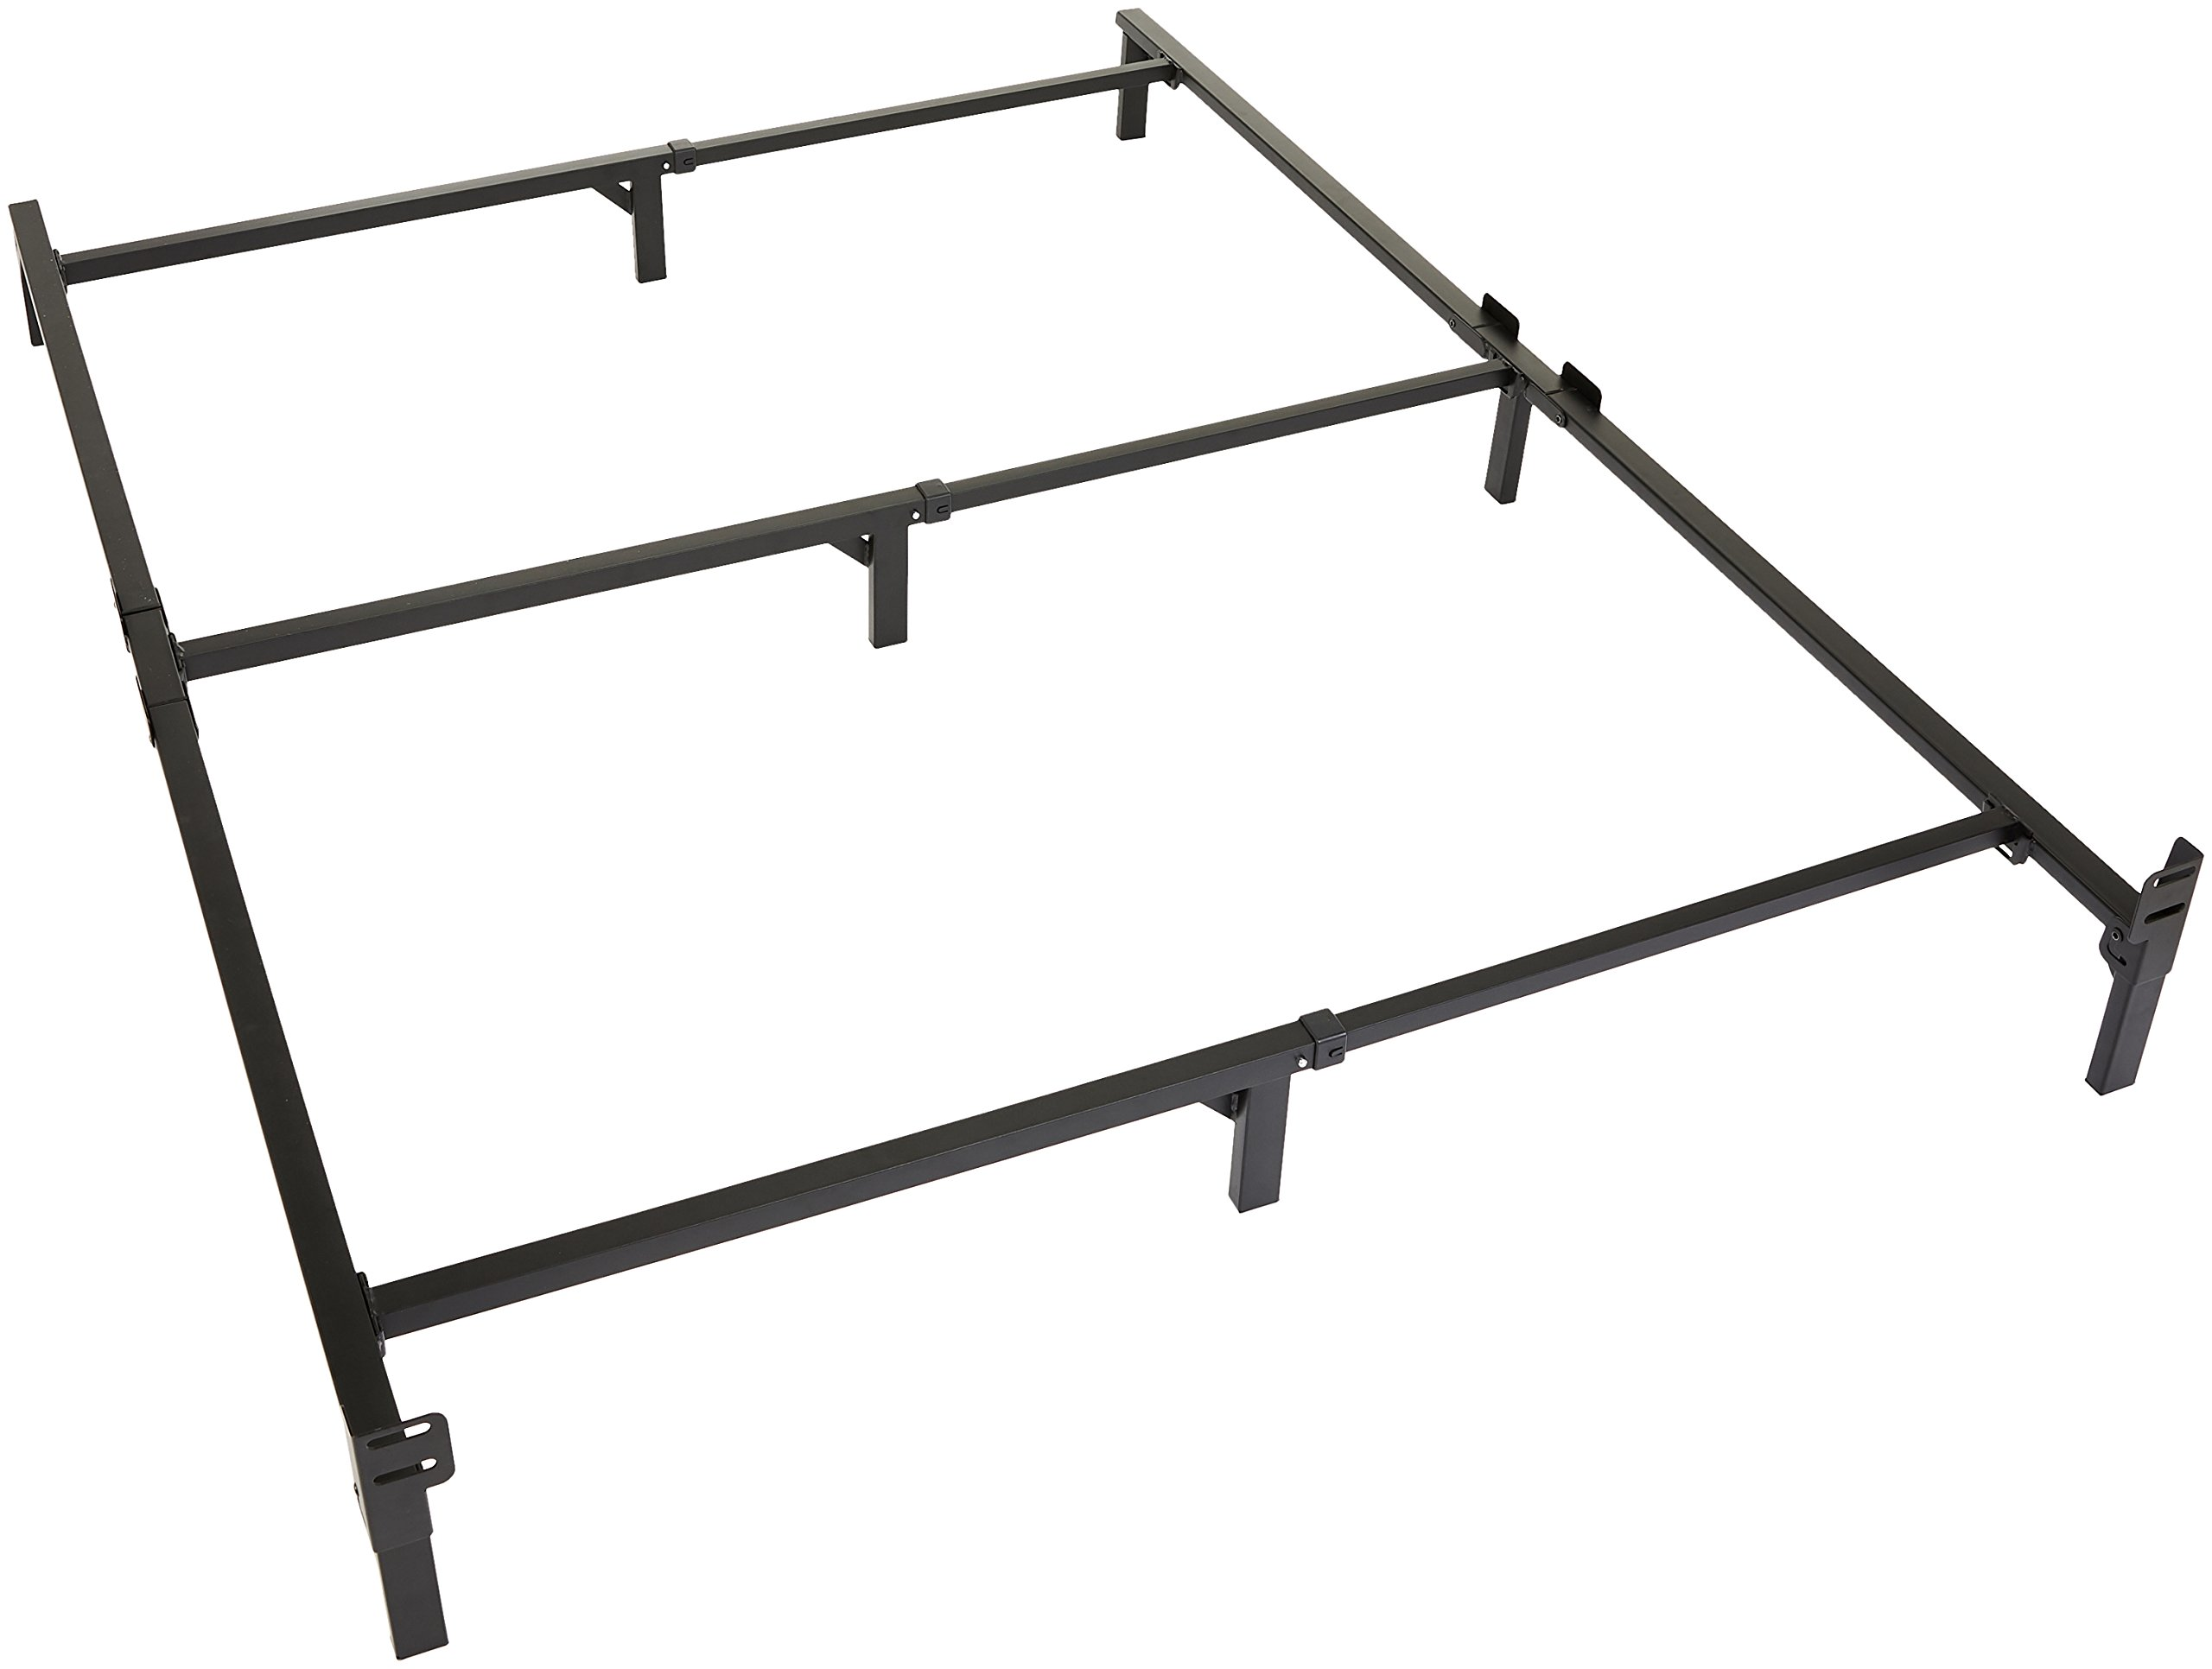 Amazon Basics 9-Leg Support Metal Bed Frame - Strong Support for Box Spring and Mattress Set - Queen Size Bed by AmazonBasics